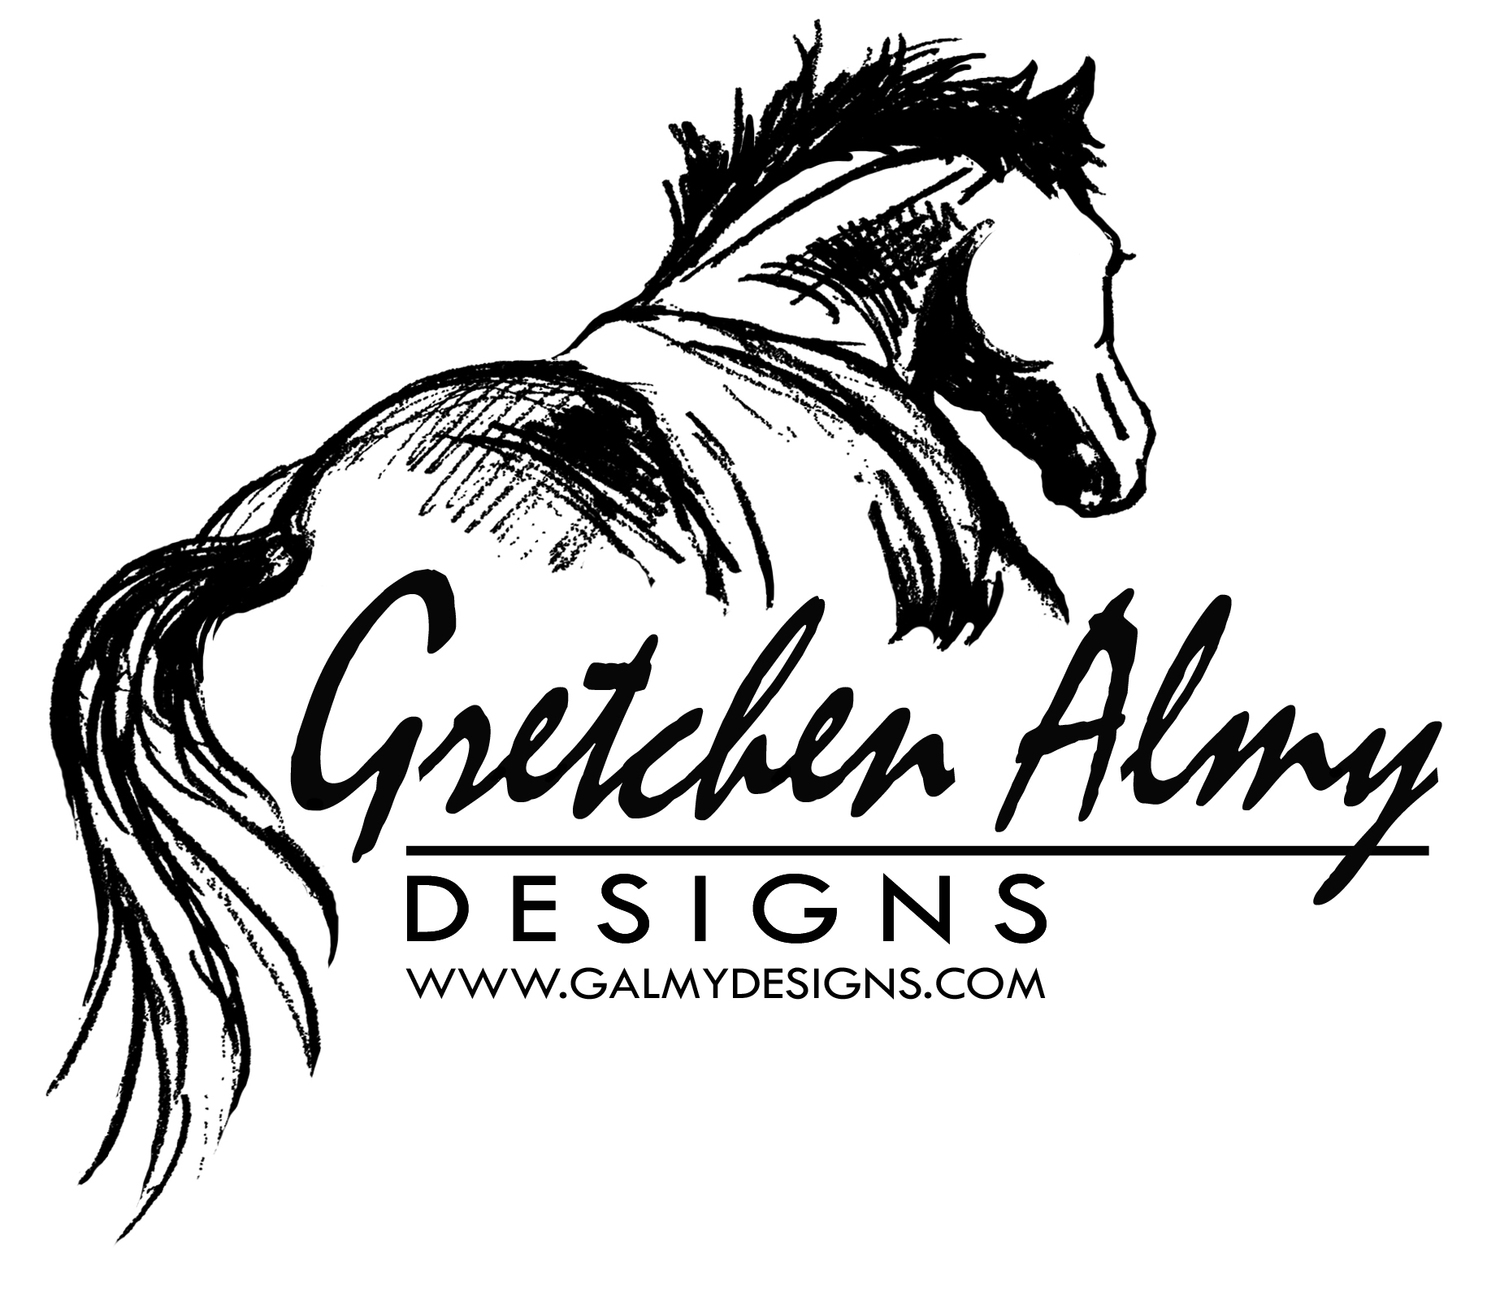 Gretchen Almy Designs